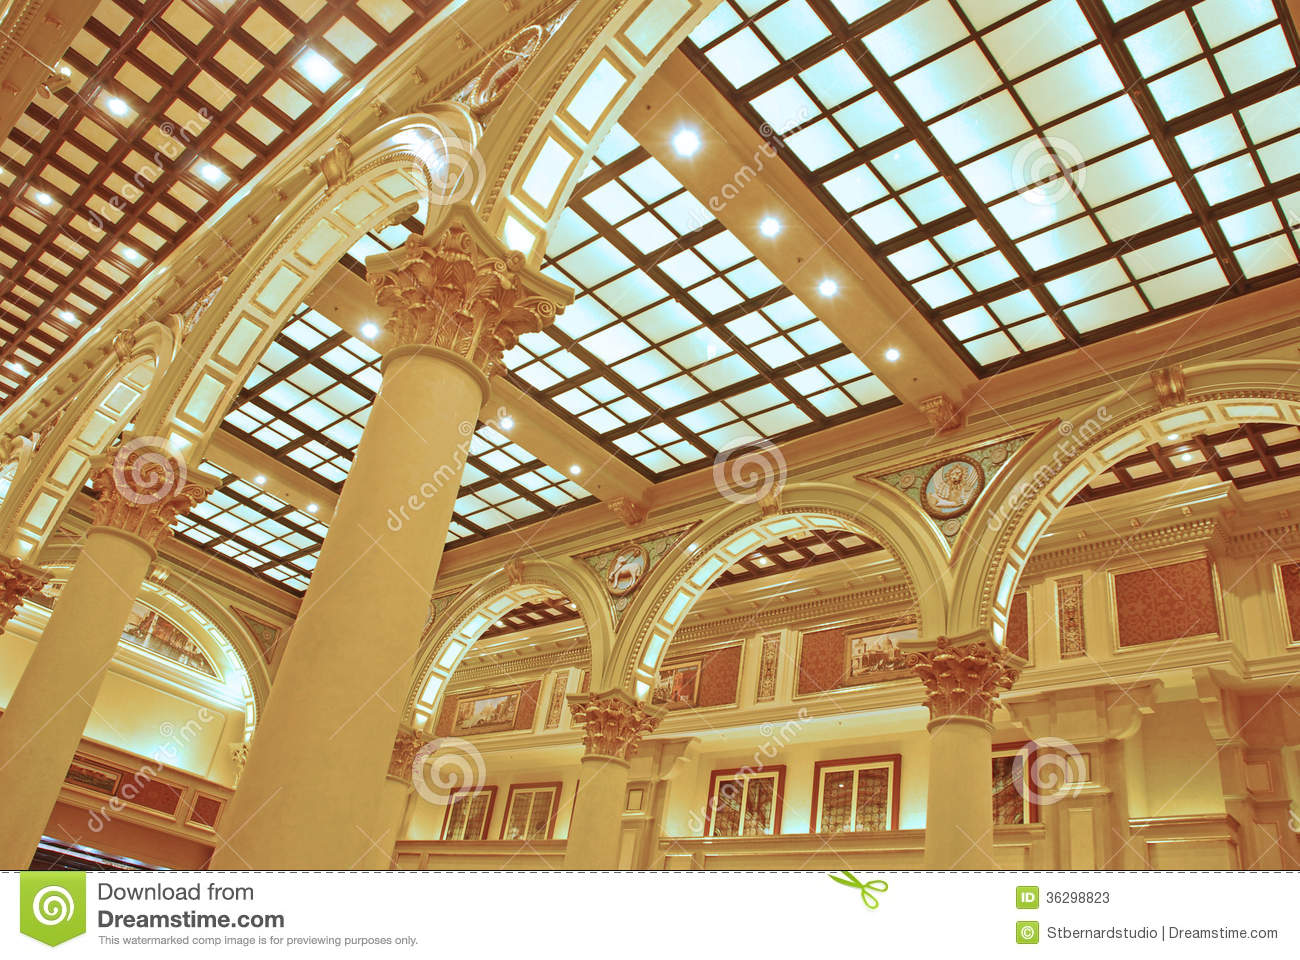 Shopping Mall Hall Square in The Venetian Macao